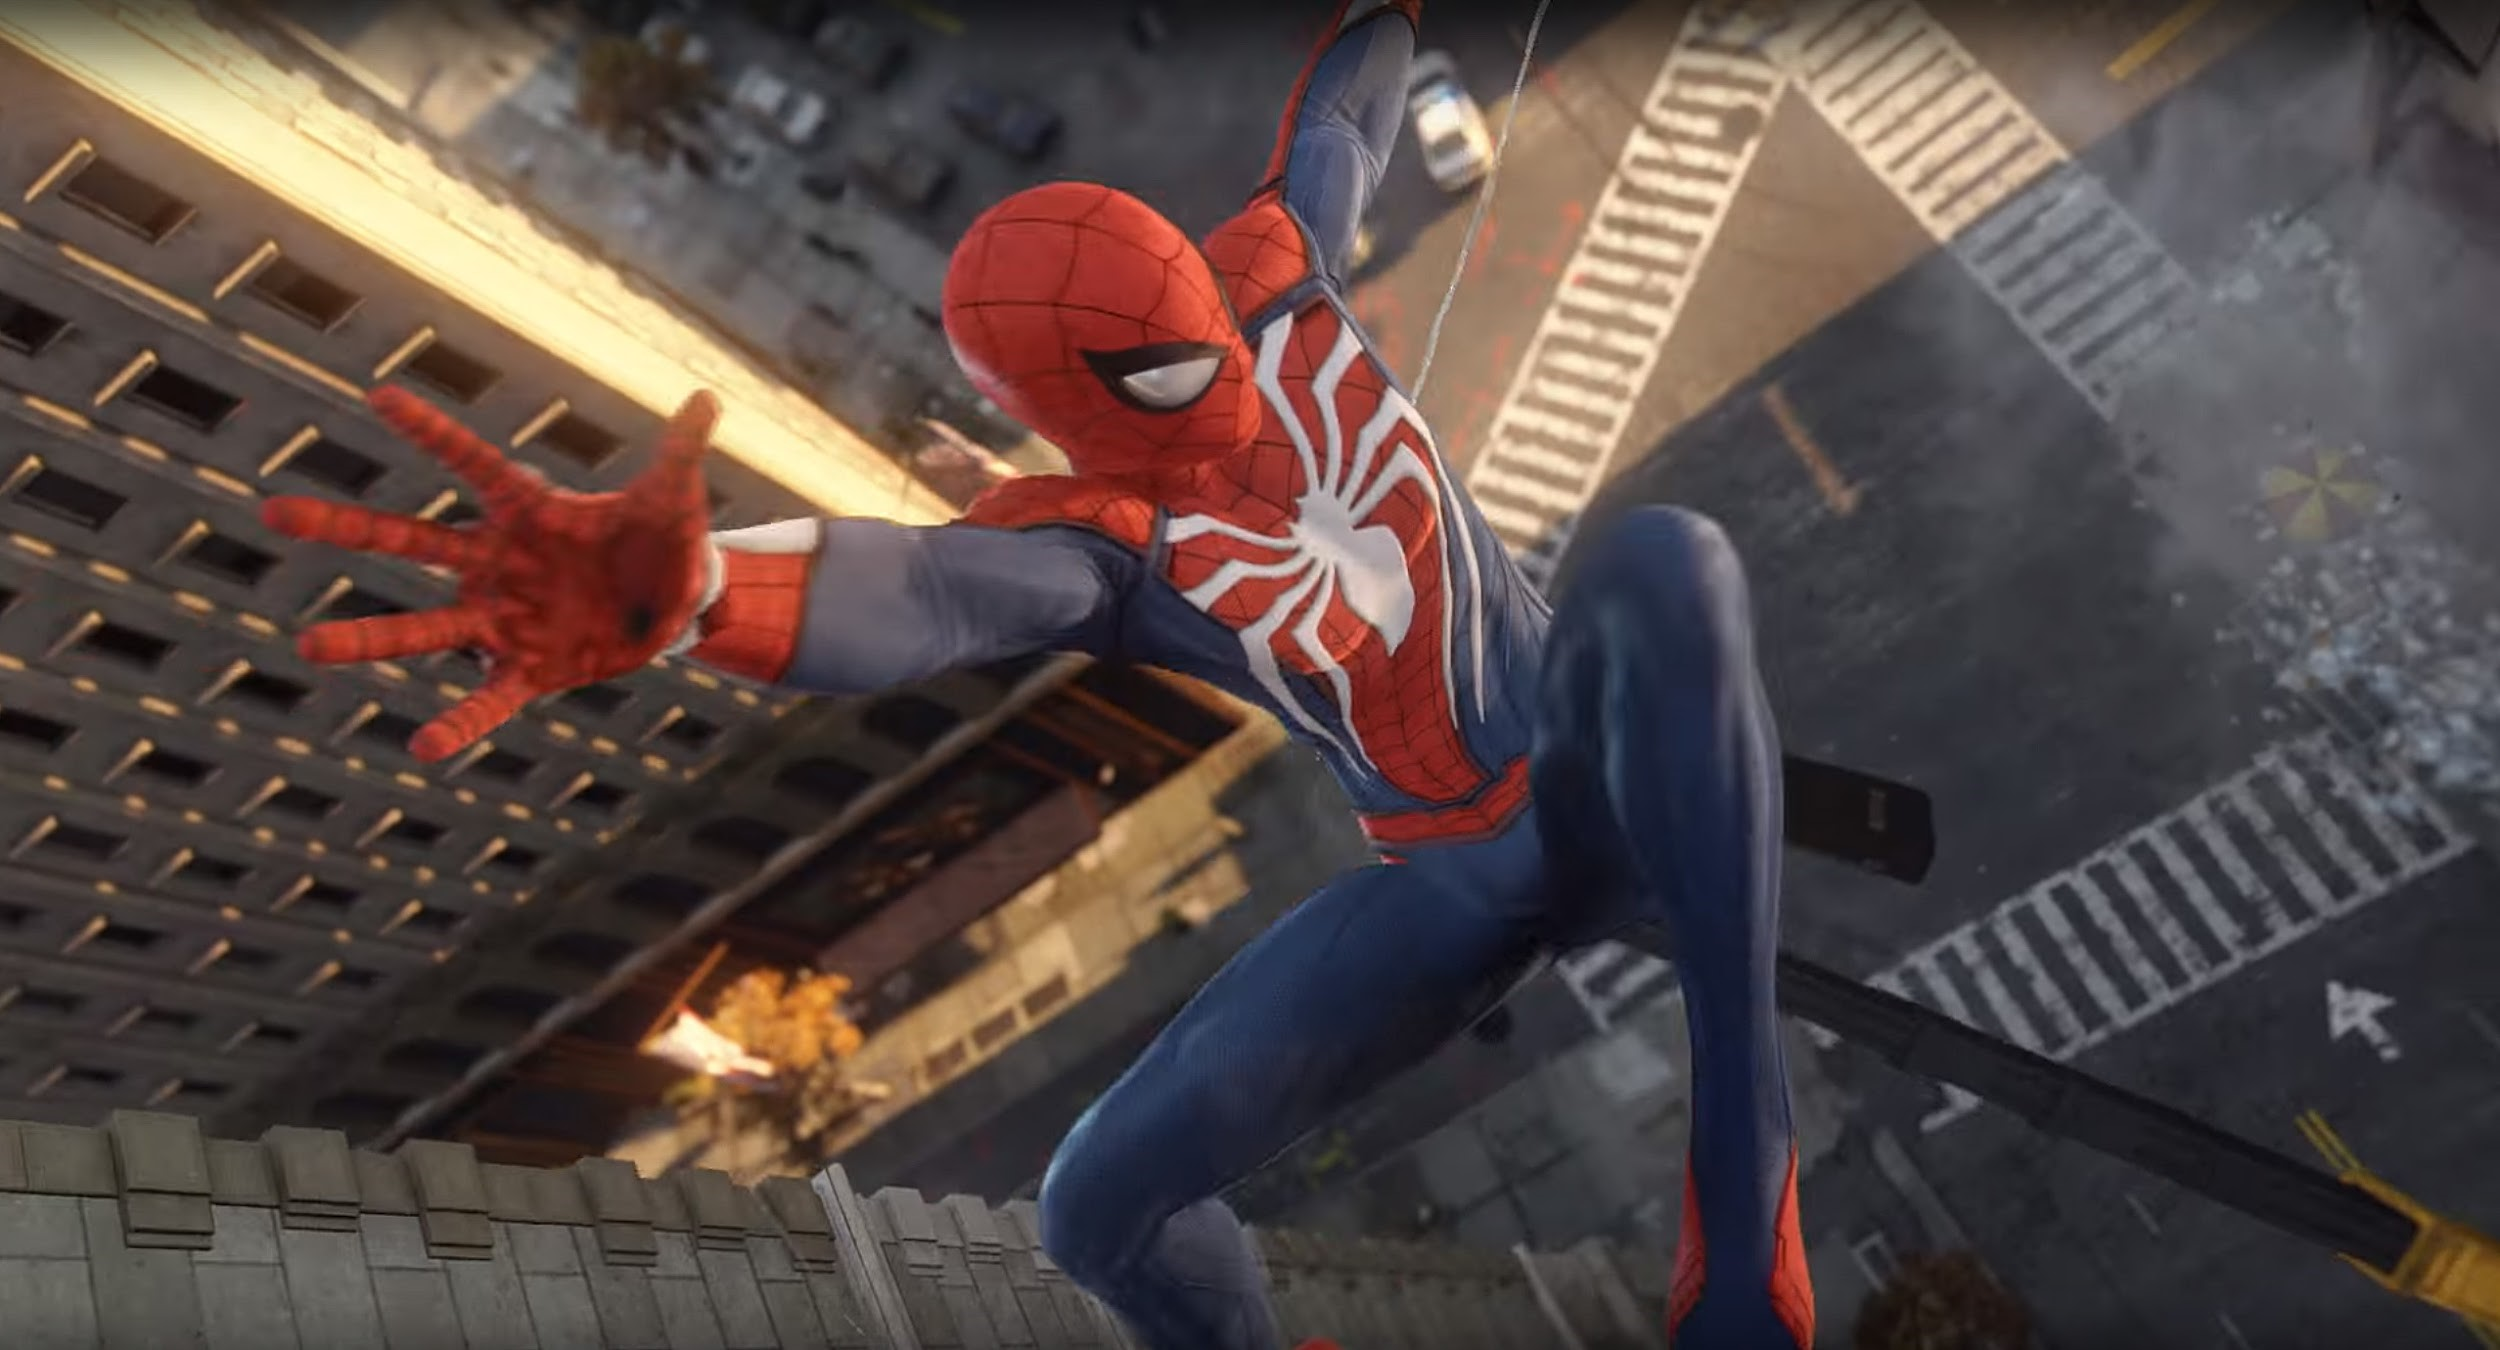 Spiderman Games The Xbox One And Ps4 Exclusives That Need To Be On Pc